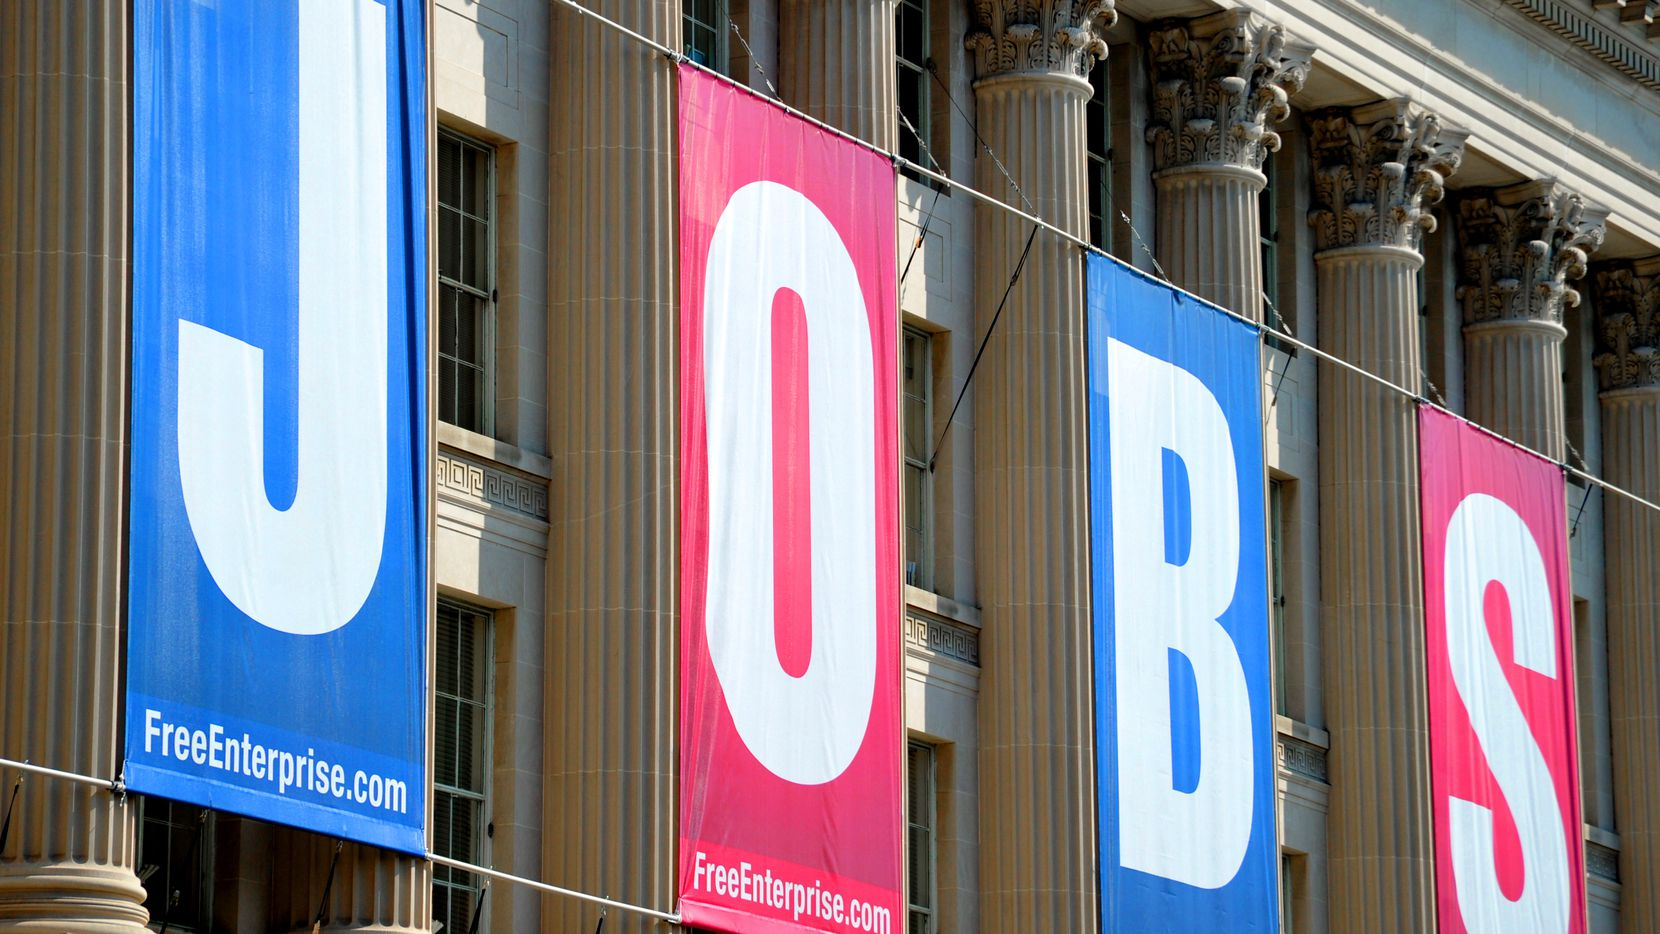 A large jobs sign is displayed above the U.S. Chamber of Commerce in Washington, D.C.